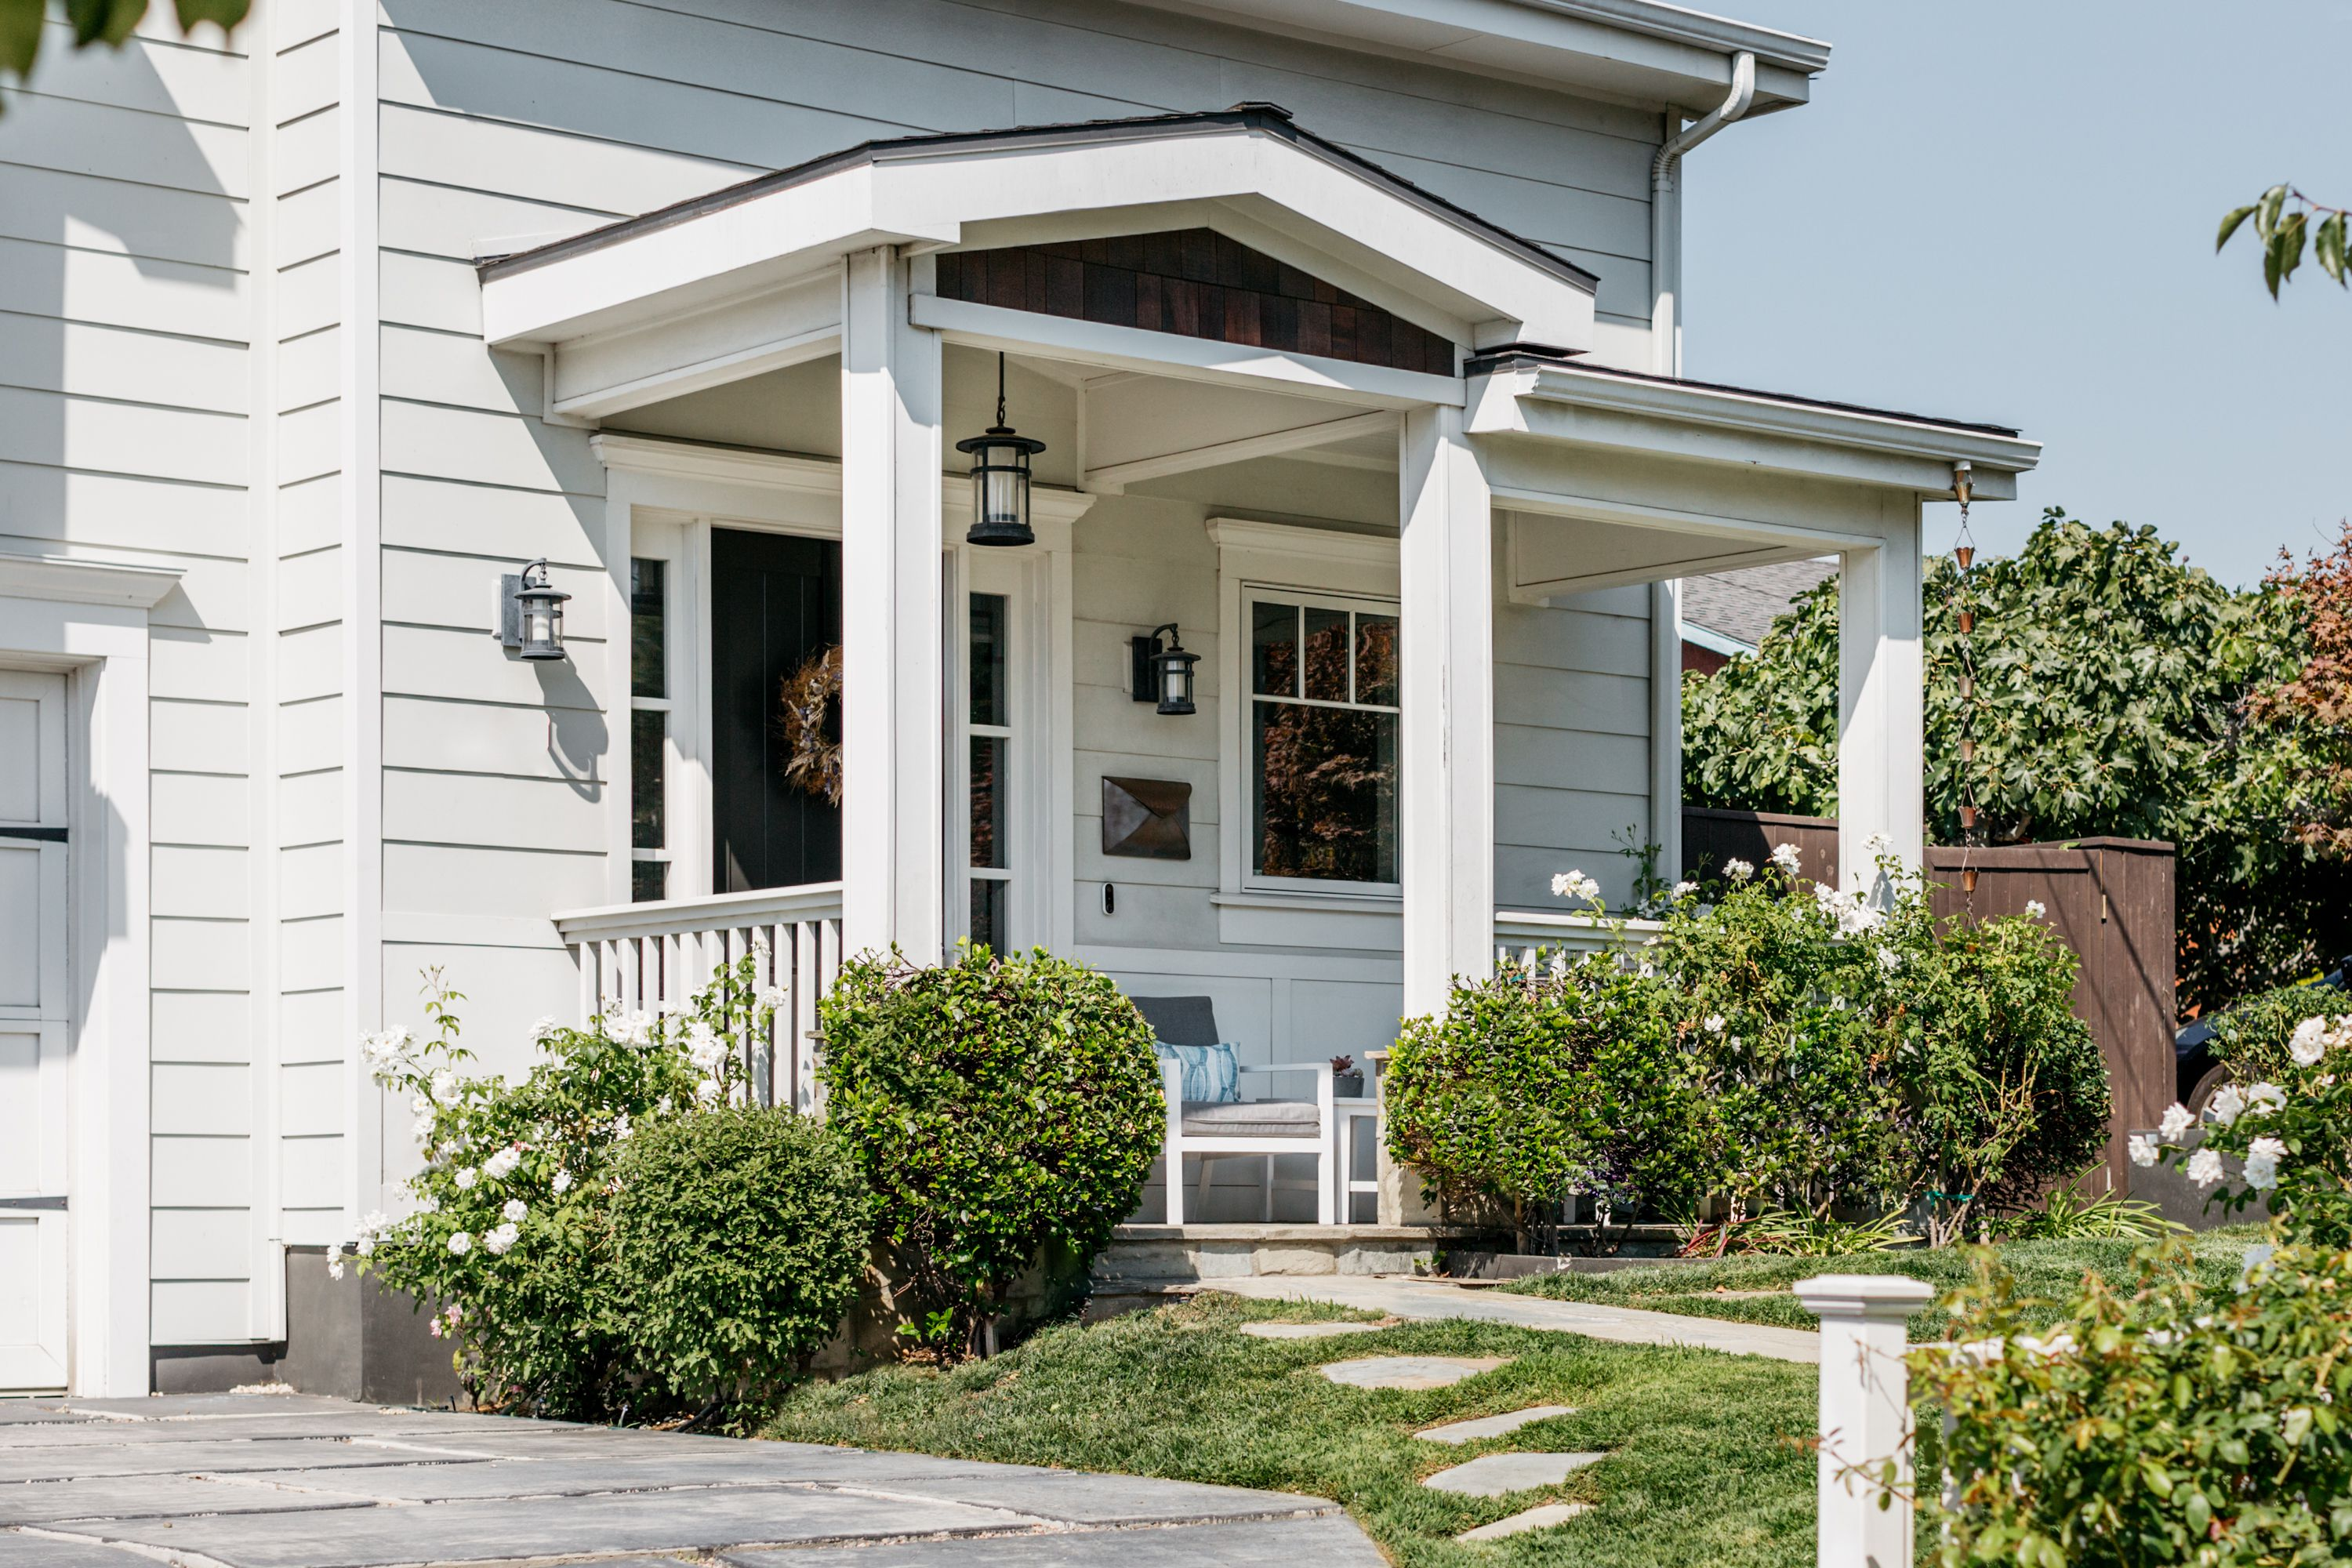 43 porch ideas for every type of home